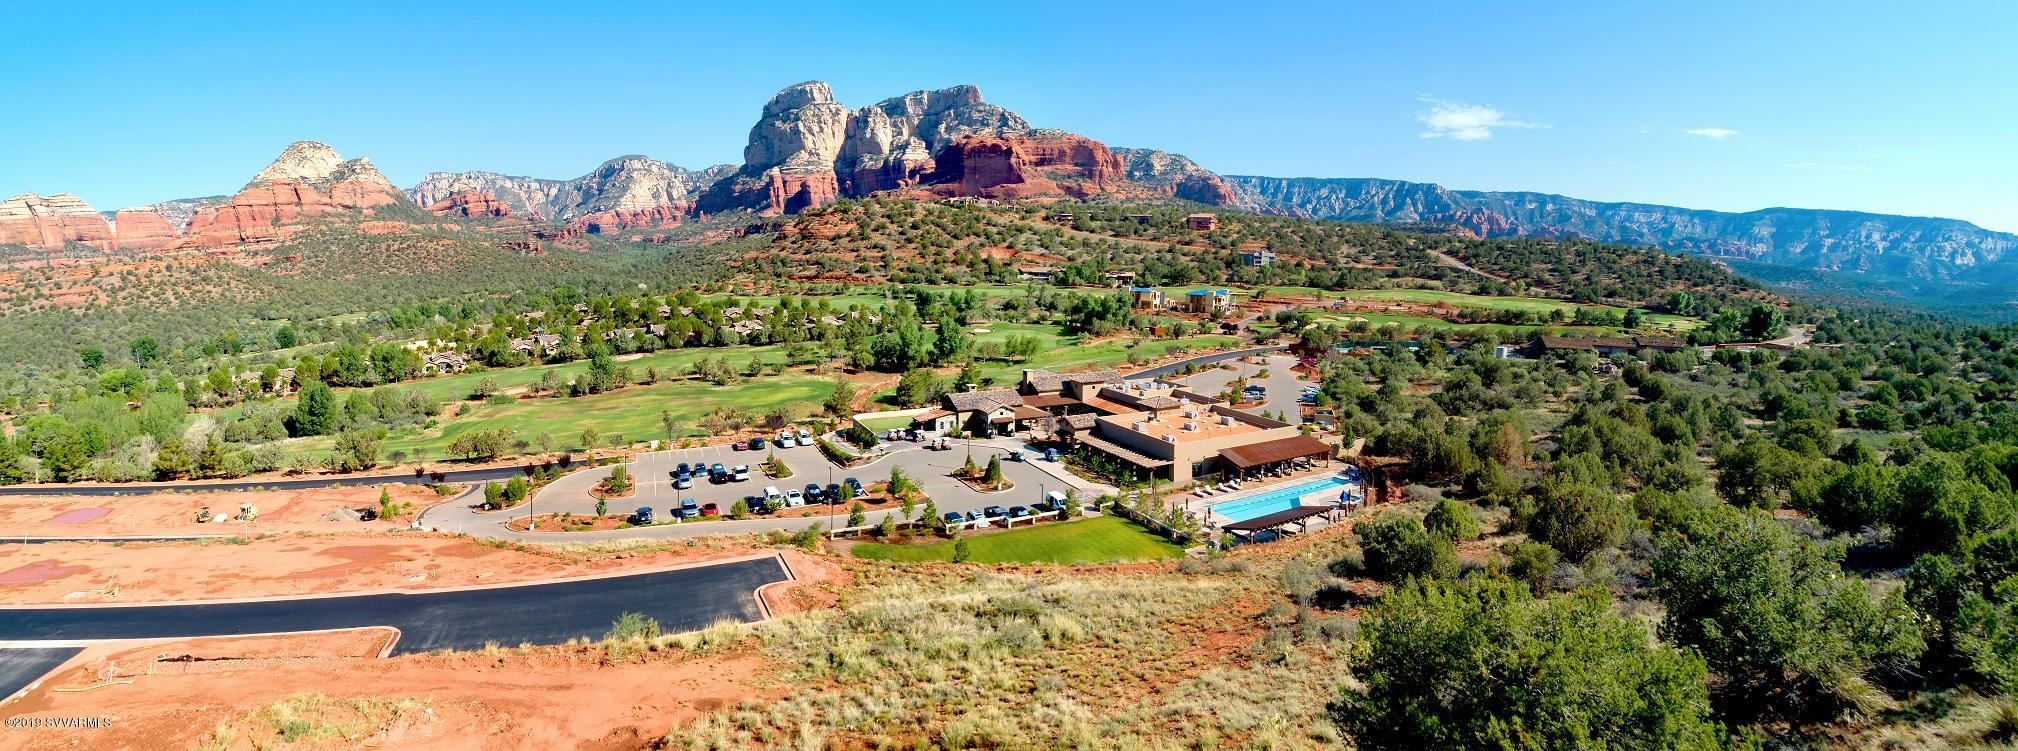 113  Fay Canyon Road, one of homes for sale in Sedona